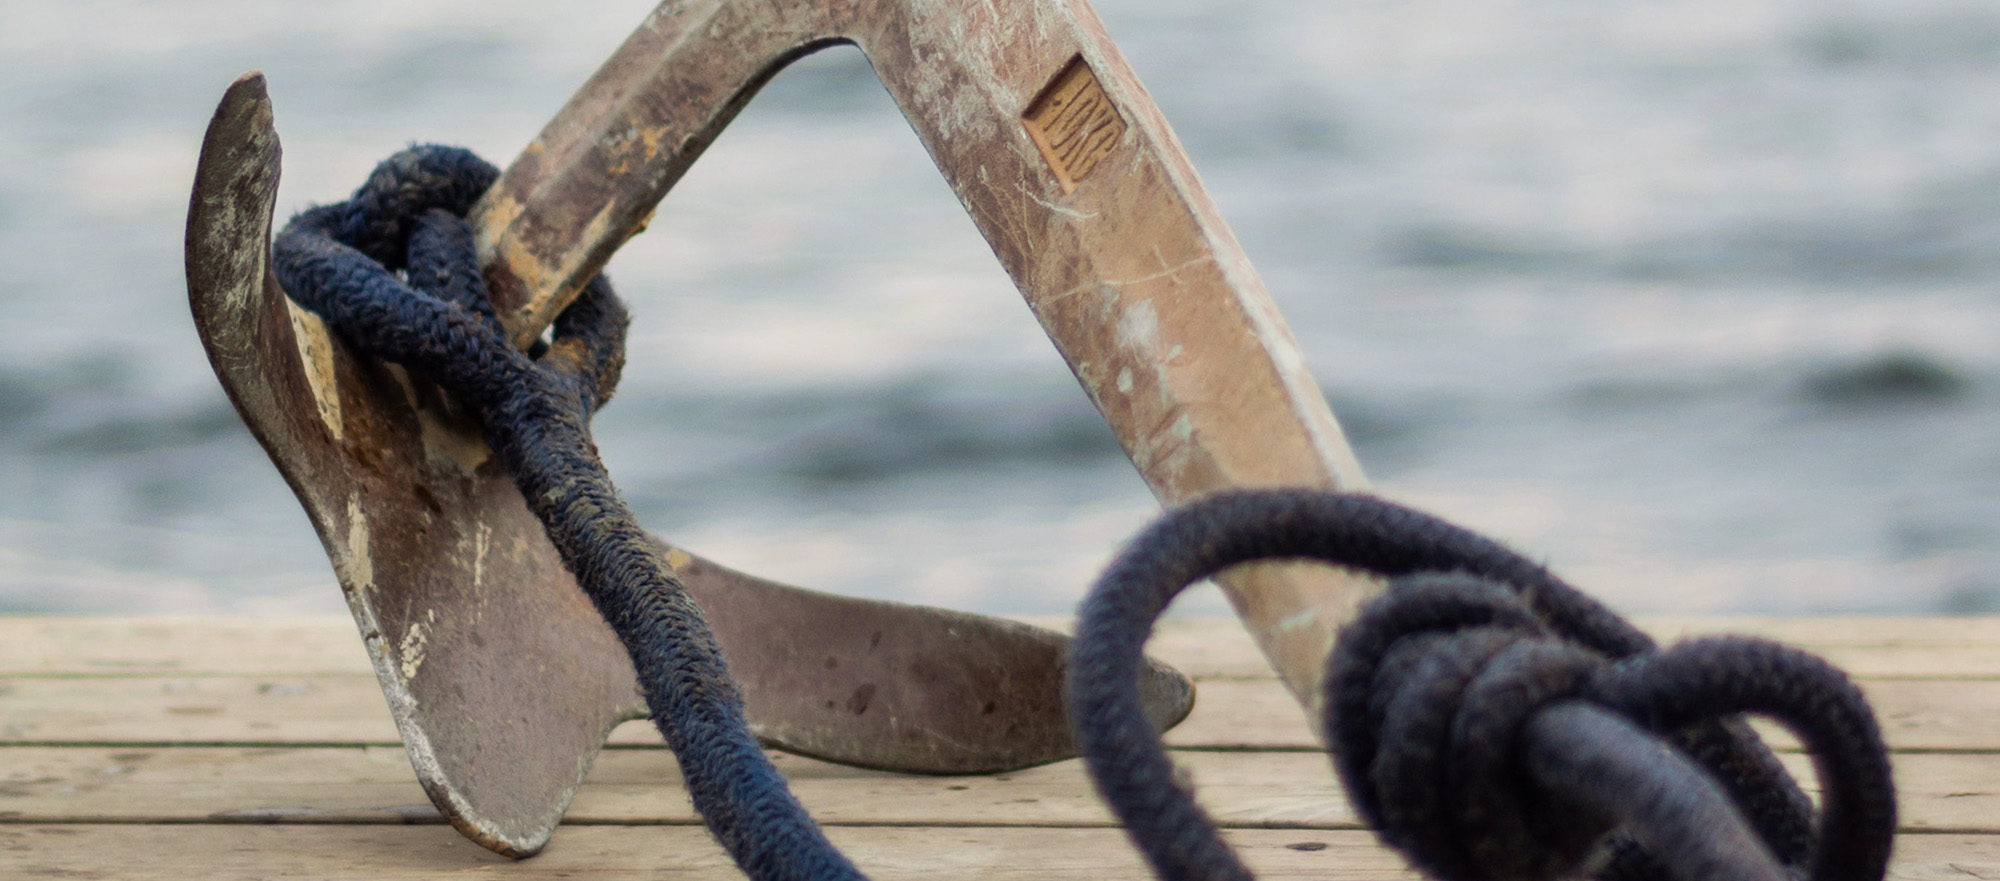 Recognizing the Importance of What Anchors You in Life